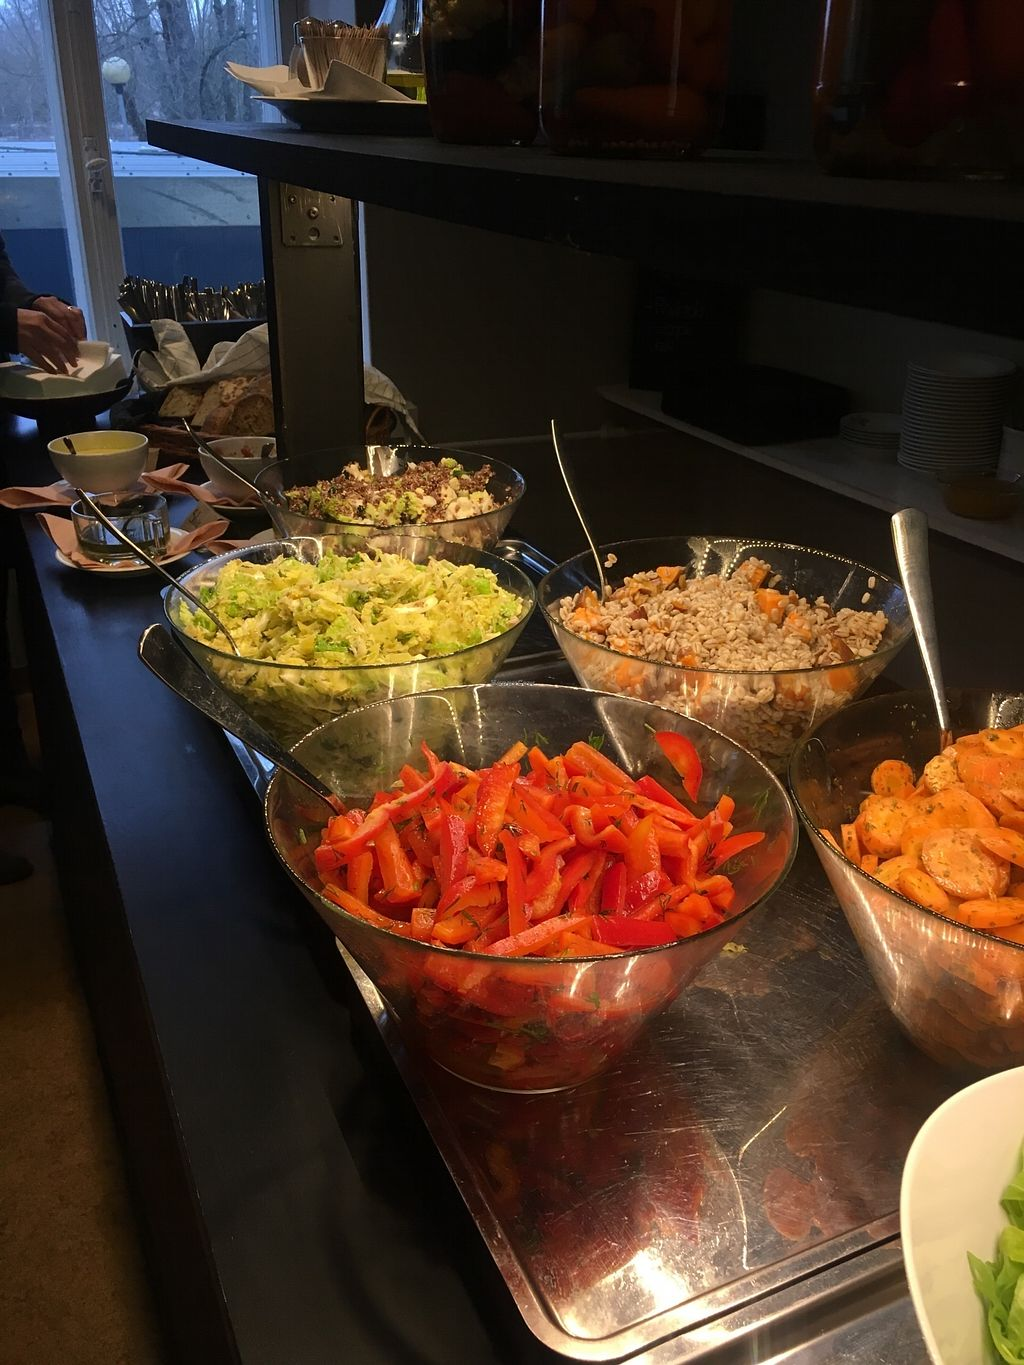 "Photo of Havikkiruokaravintola Loop  by <a href=""/members/profile/SeitanSeitanSeitan"">SeitanSeitanSeitan</a> <br/>Salads at vegan brunch <br/> January 30, 2018  - <a href='/contact/abuse/image/110618/352796'>Report</a>"